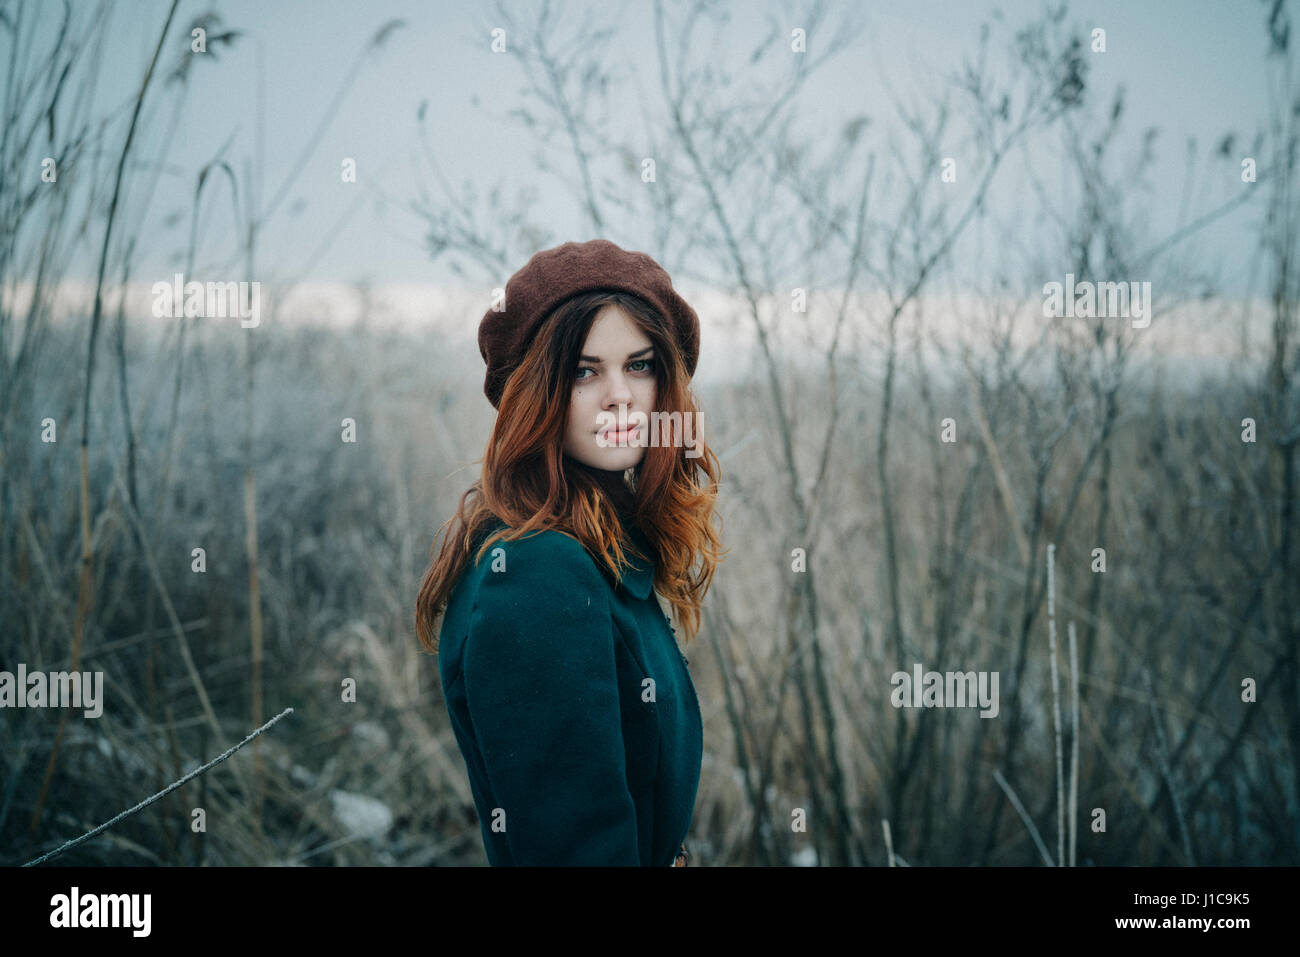 Serious Caucasian woman standing in field - Stock Image